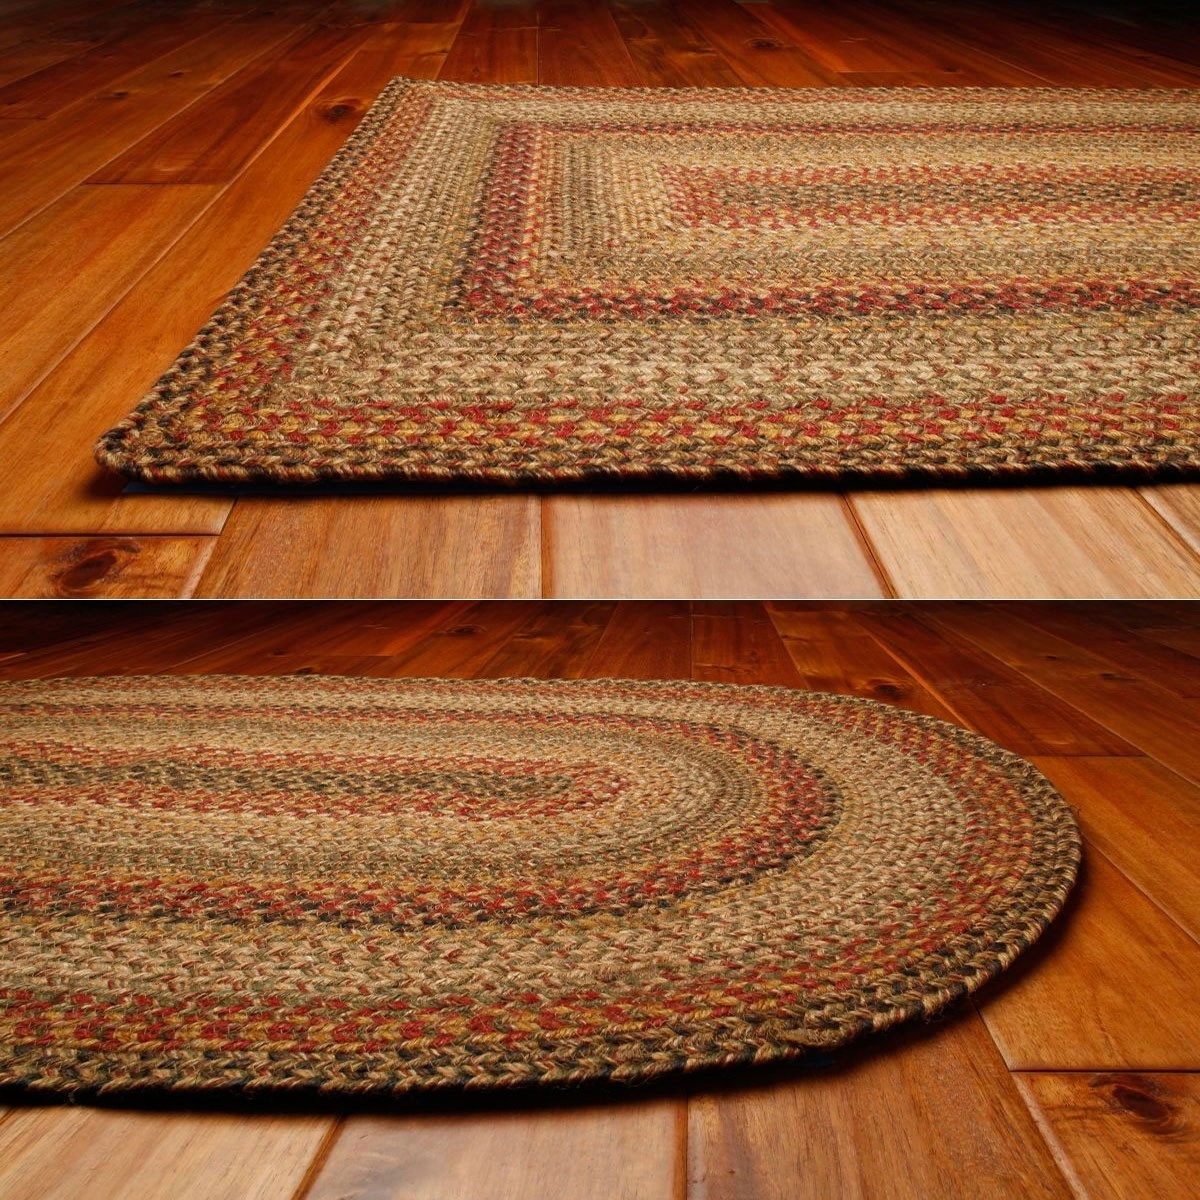 Kingston Jute Braided Rugs Regarding Buy Braided Rugs For Less (Image 7 of 10)